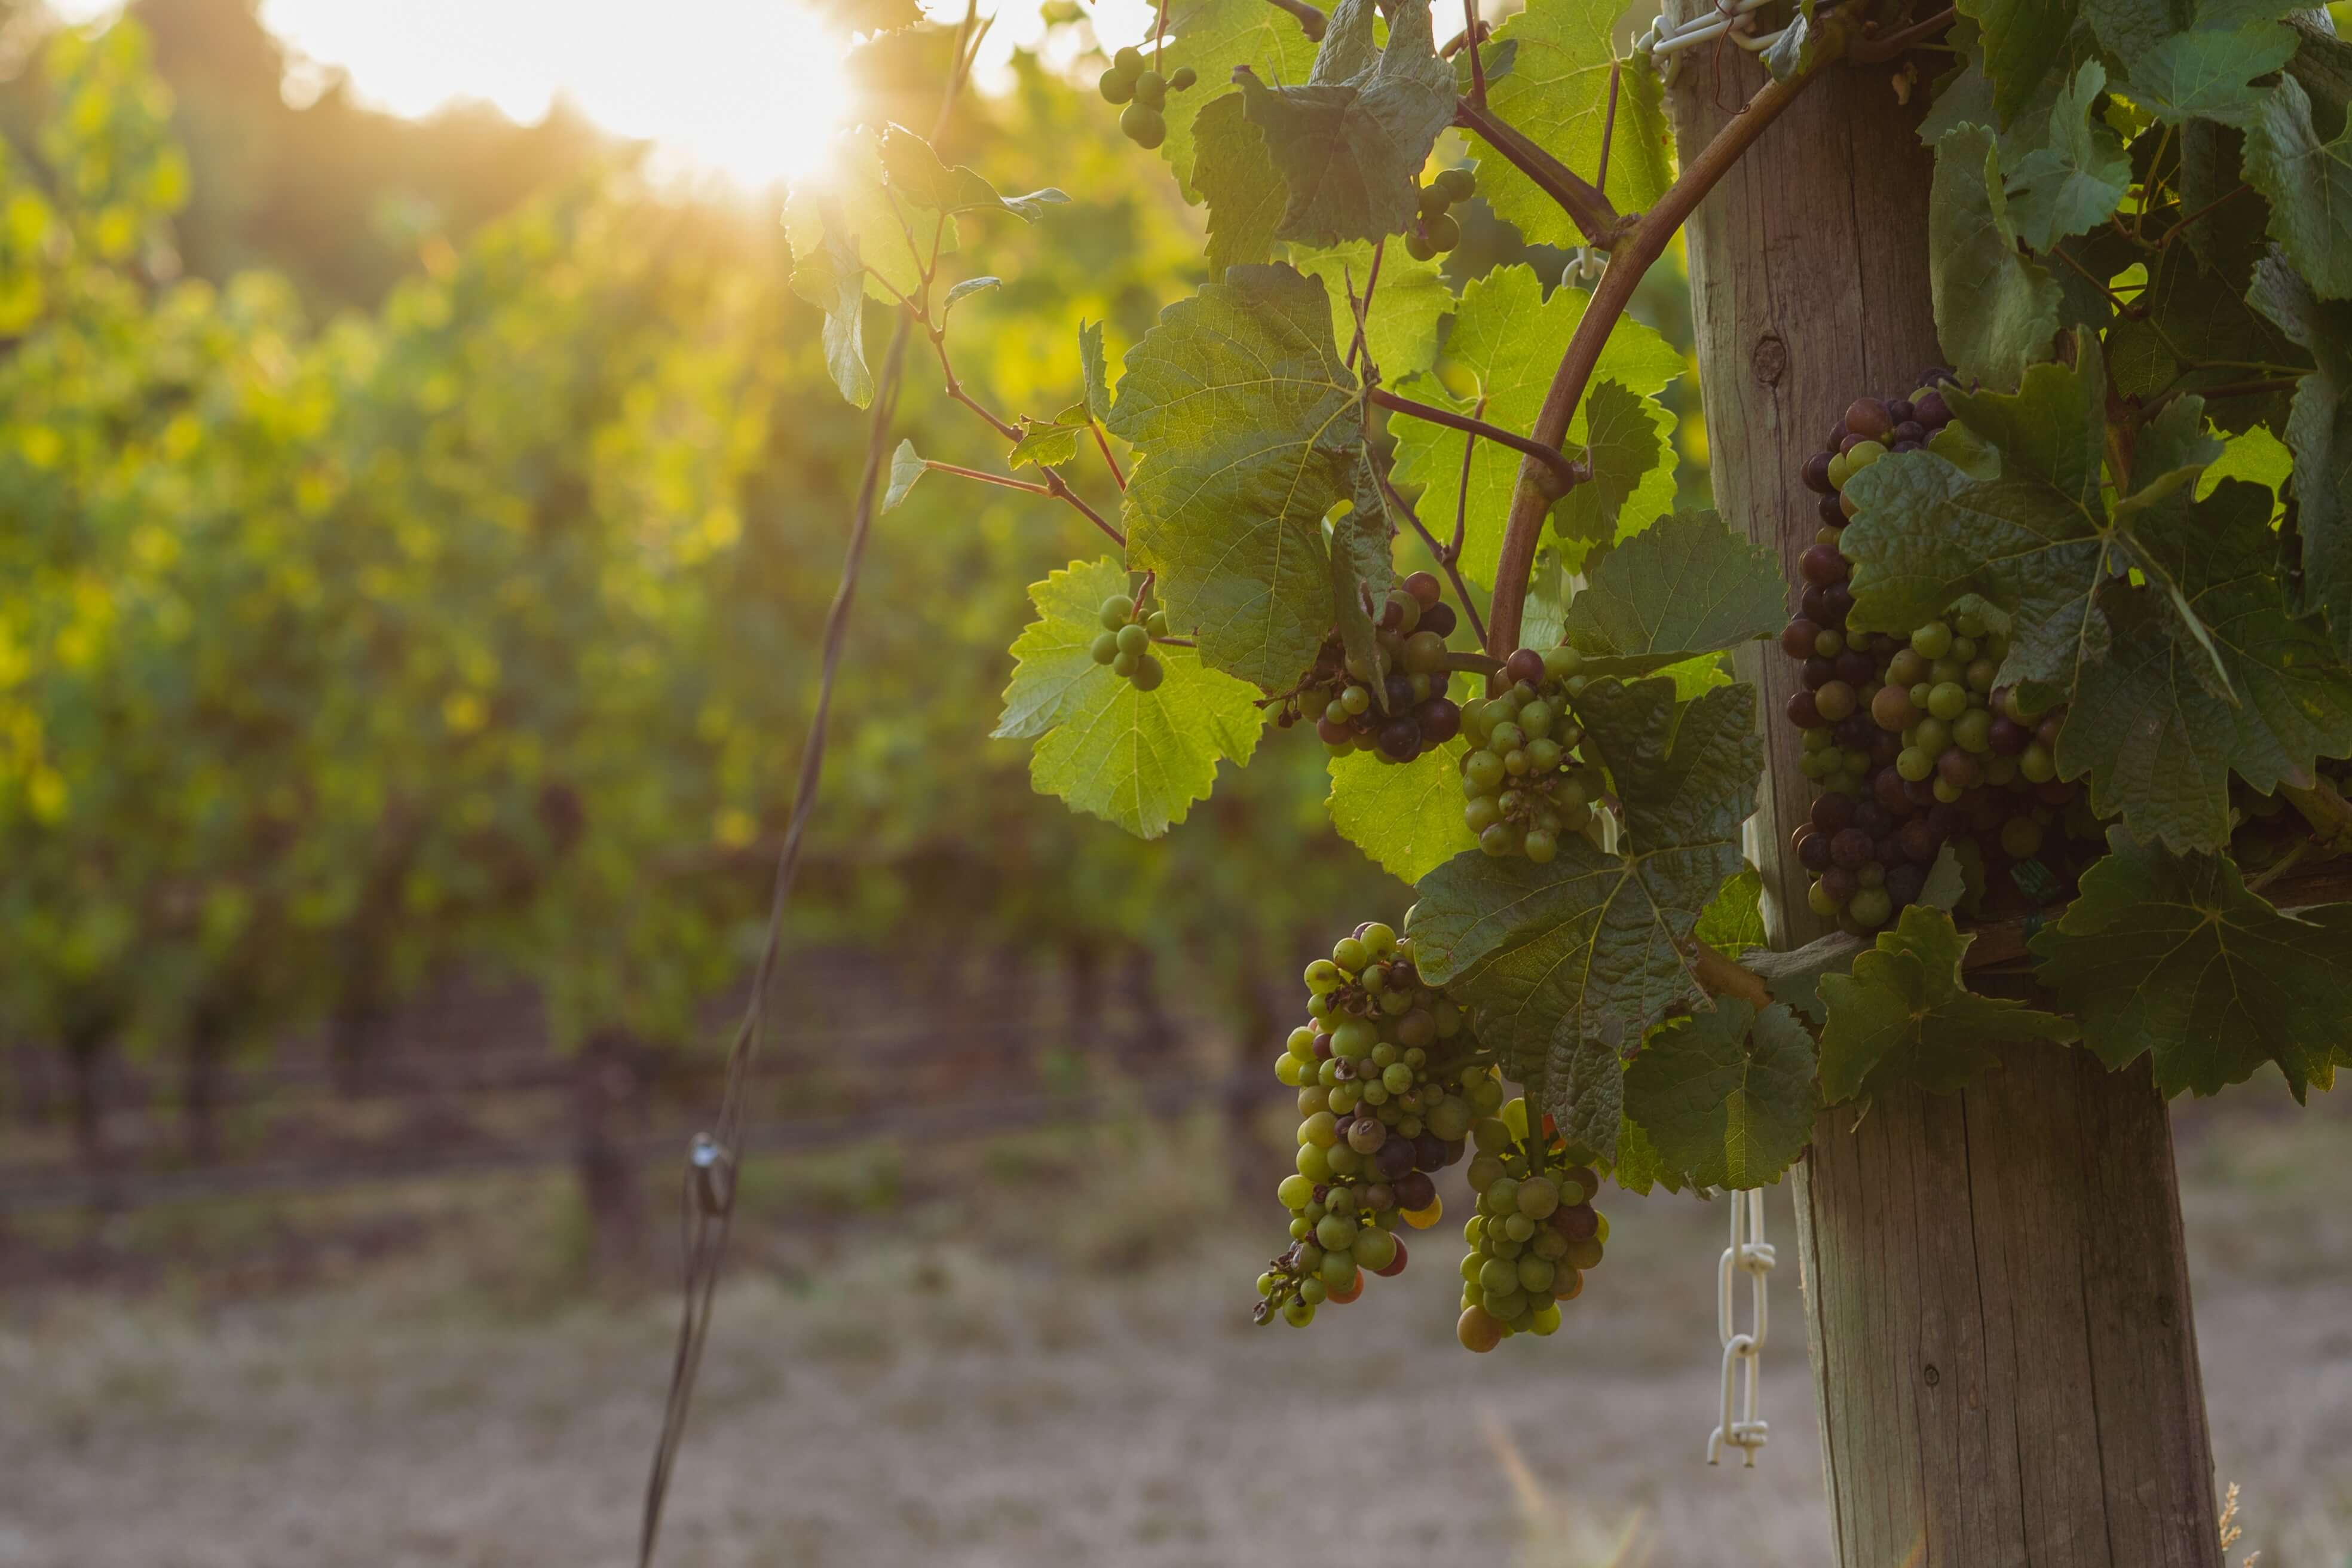 Portuguese wine remains truly unique. With many different grape varieties that can't be found elsewhere in the world, it is no wonder why this country is known for its excellent wine